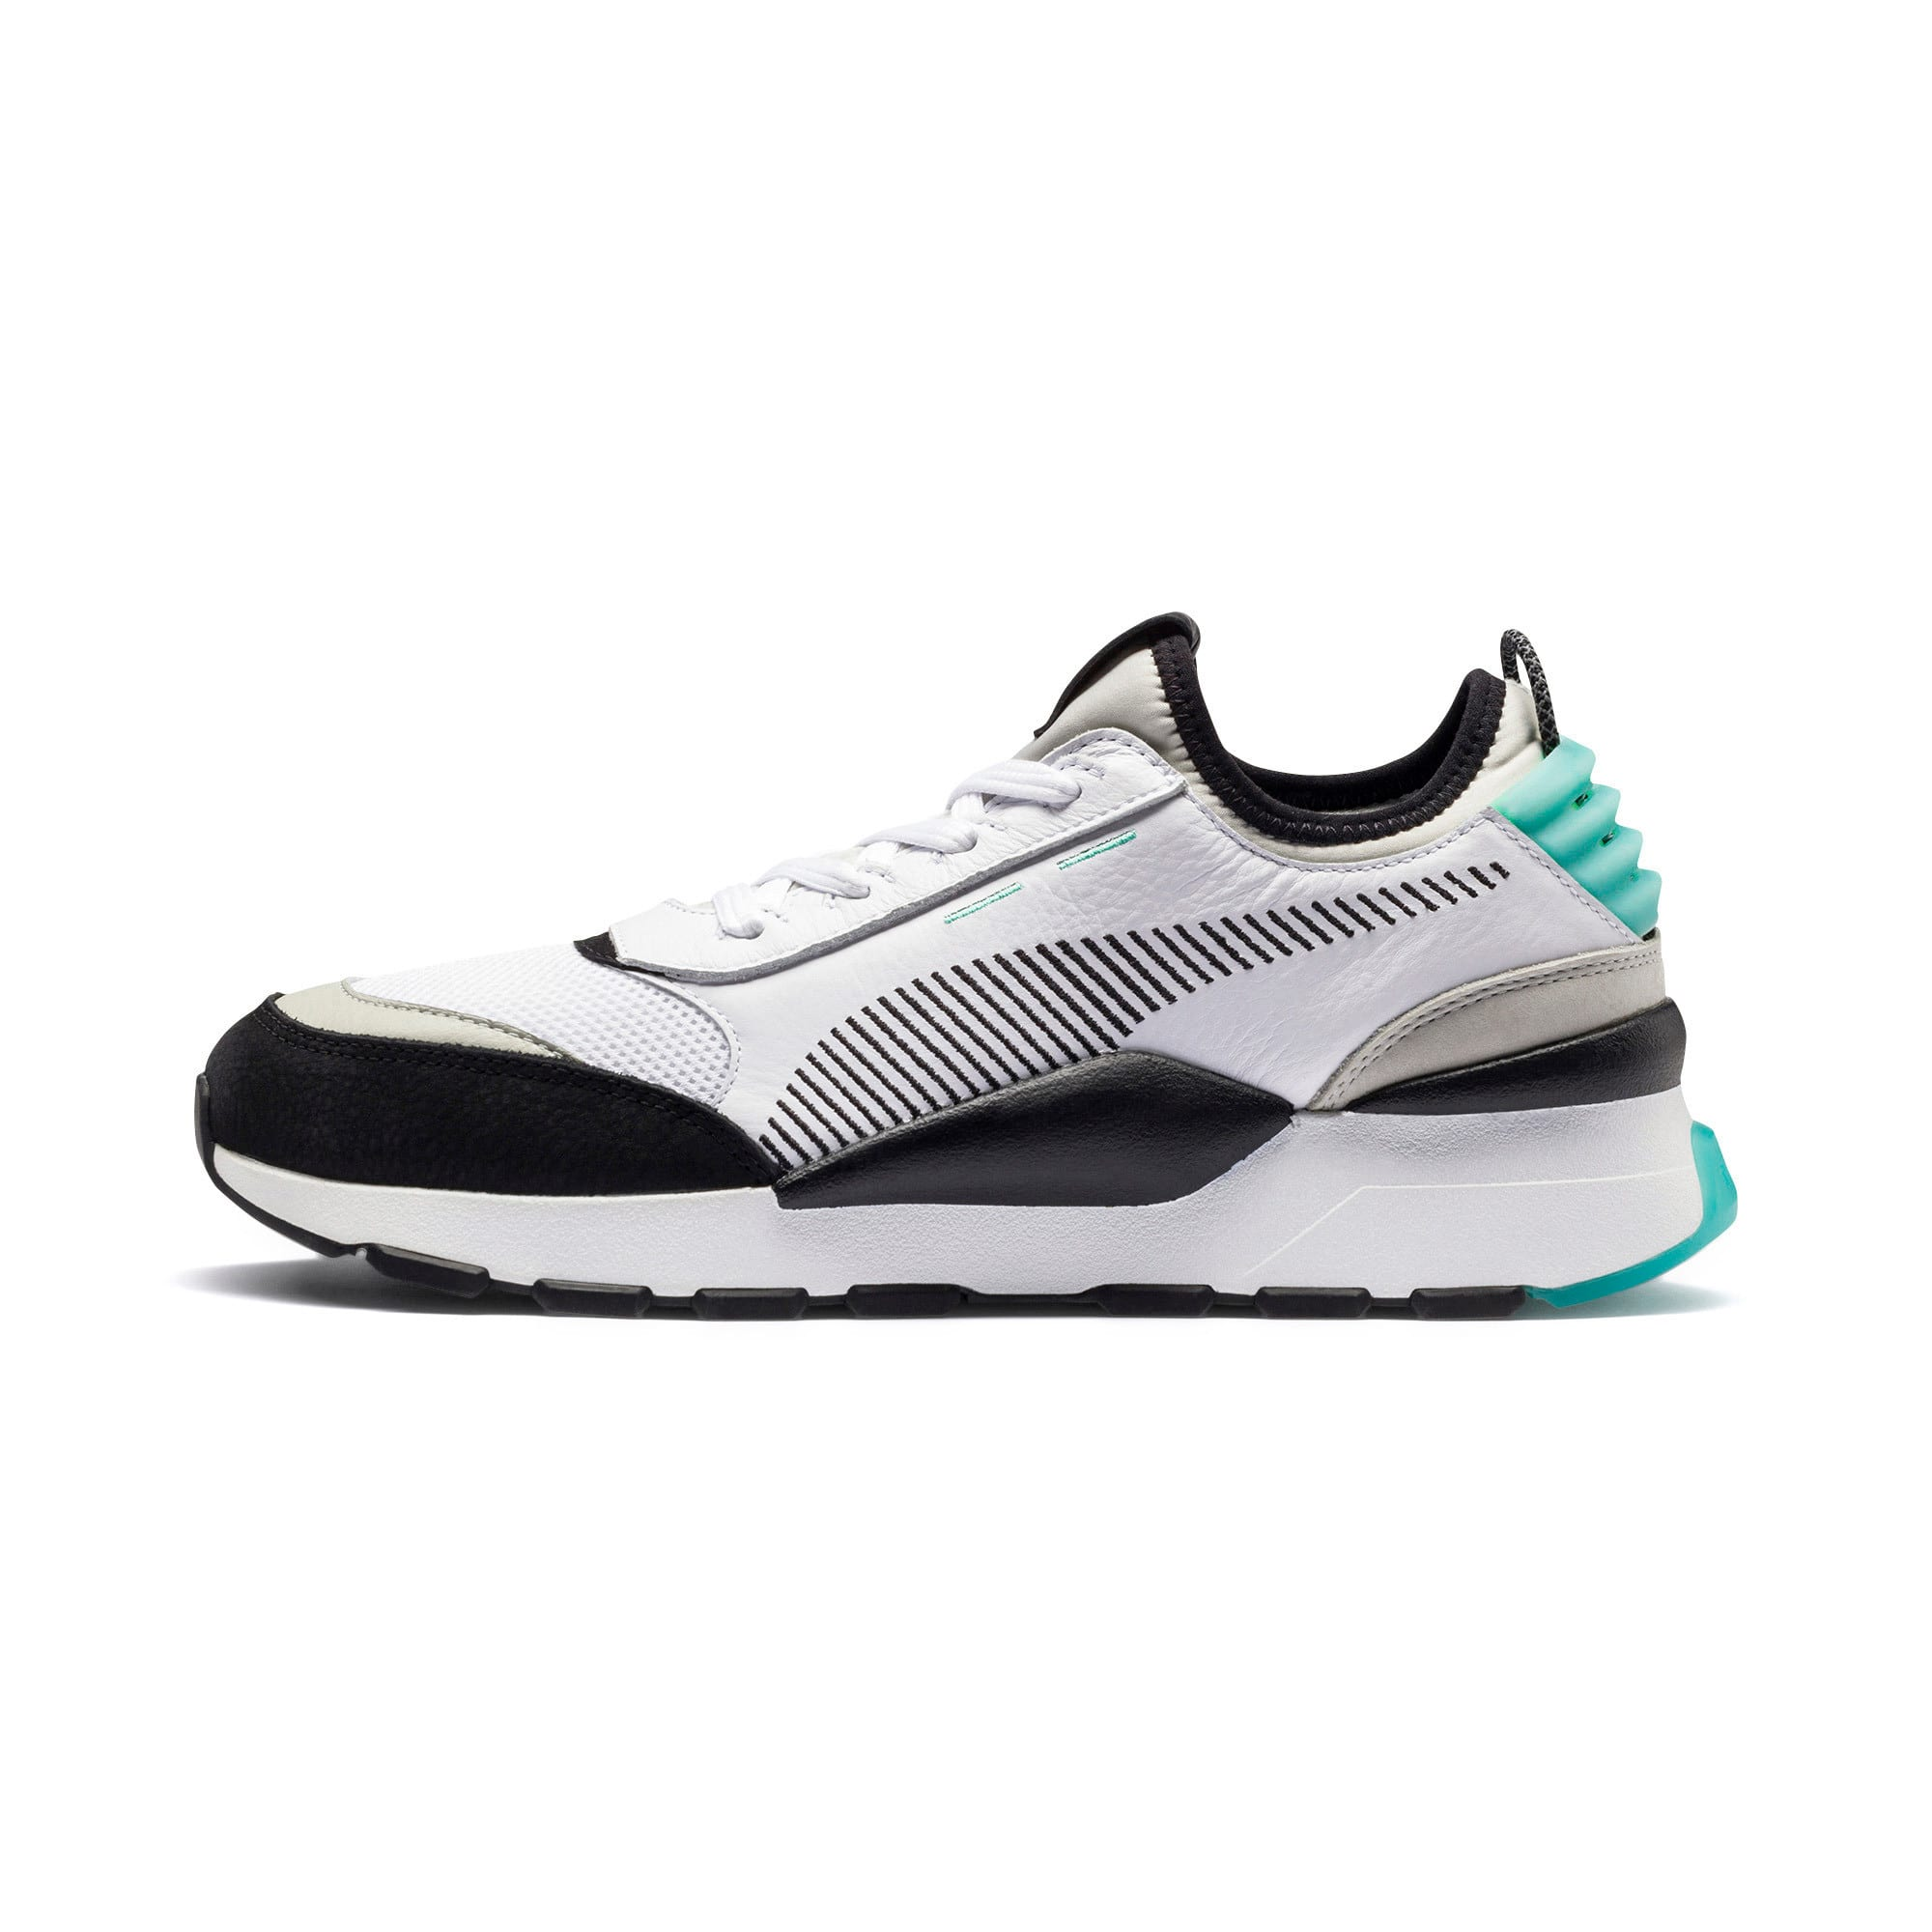 Thumbnail 1 of RS-0 RE-INVENTION Sneaker, White-GrayViolet-BiscayGreen, medium